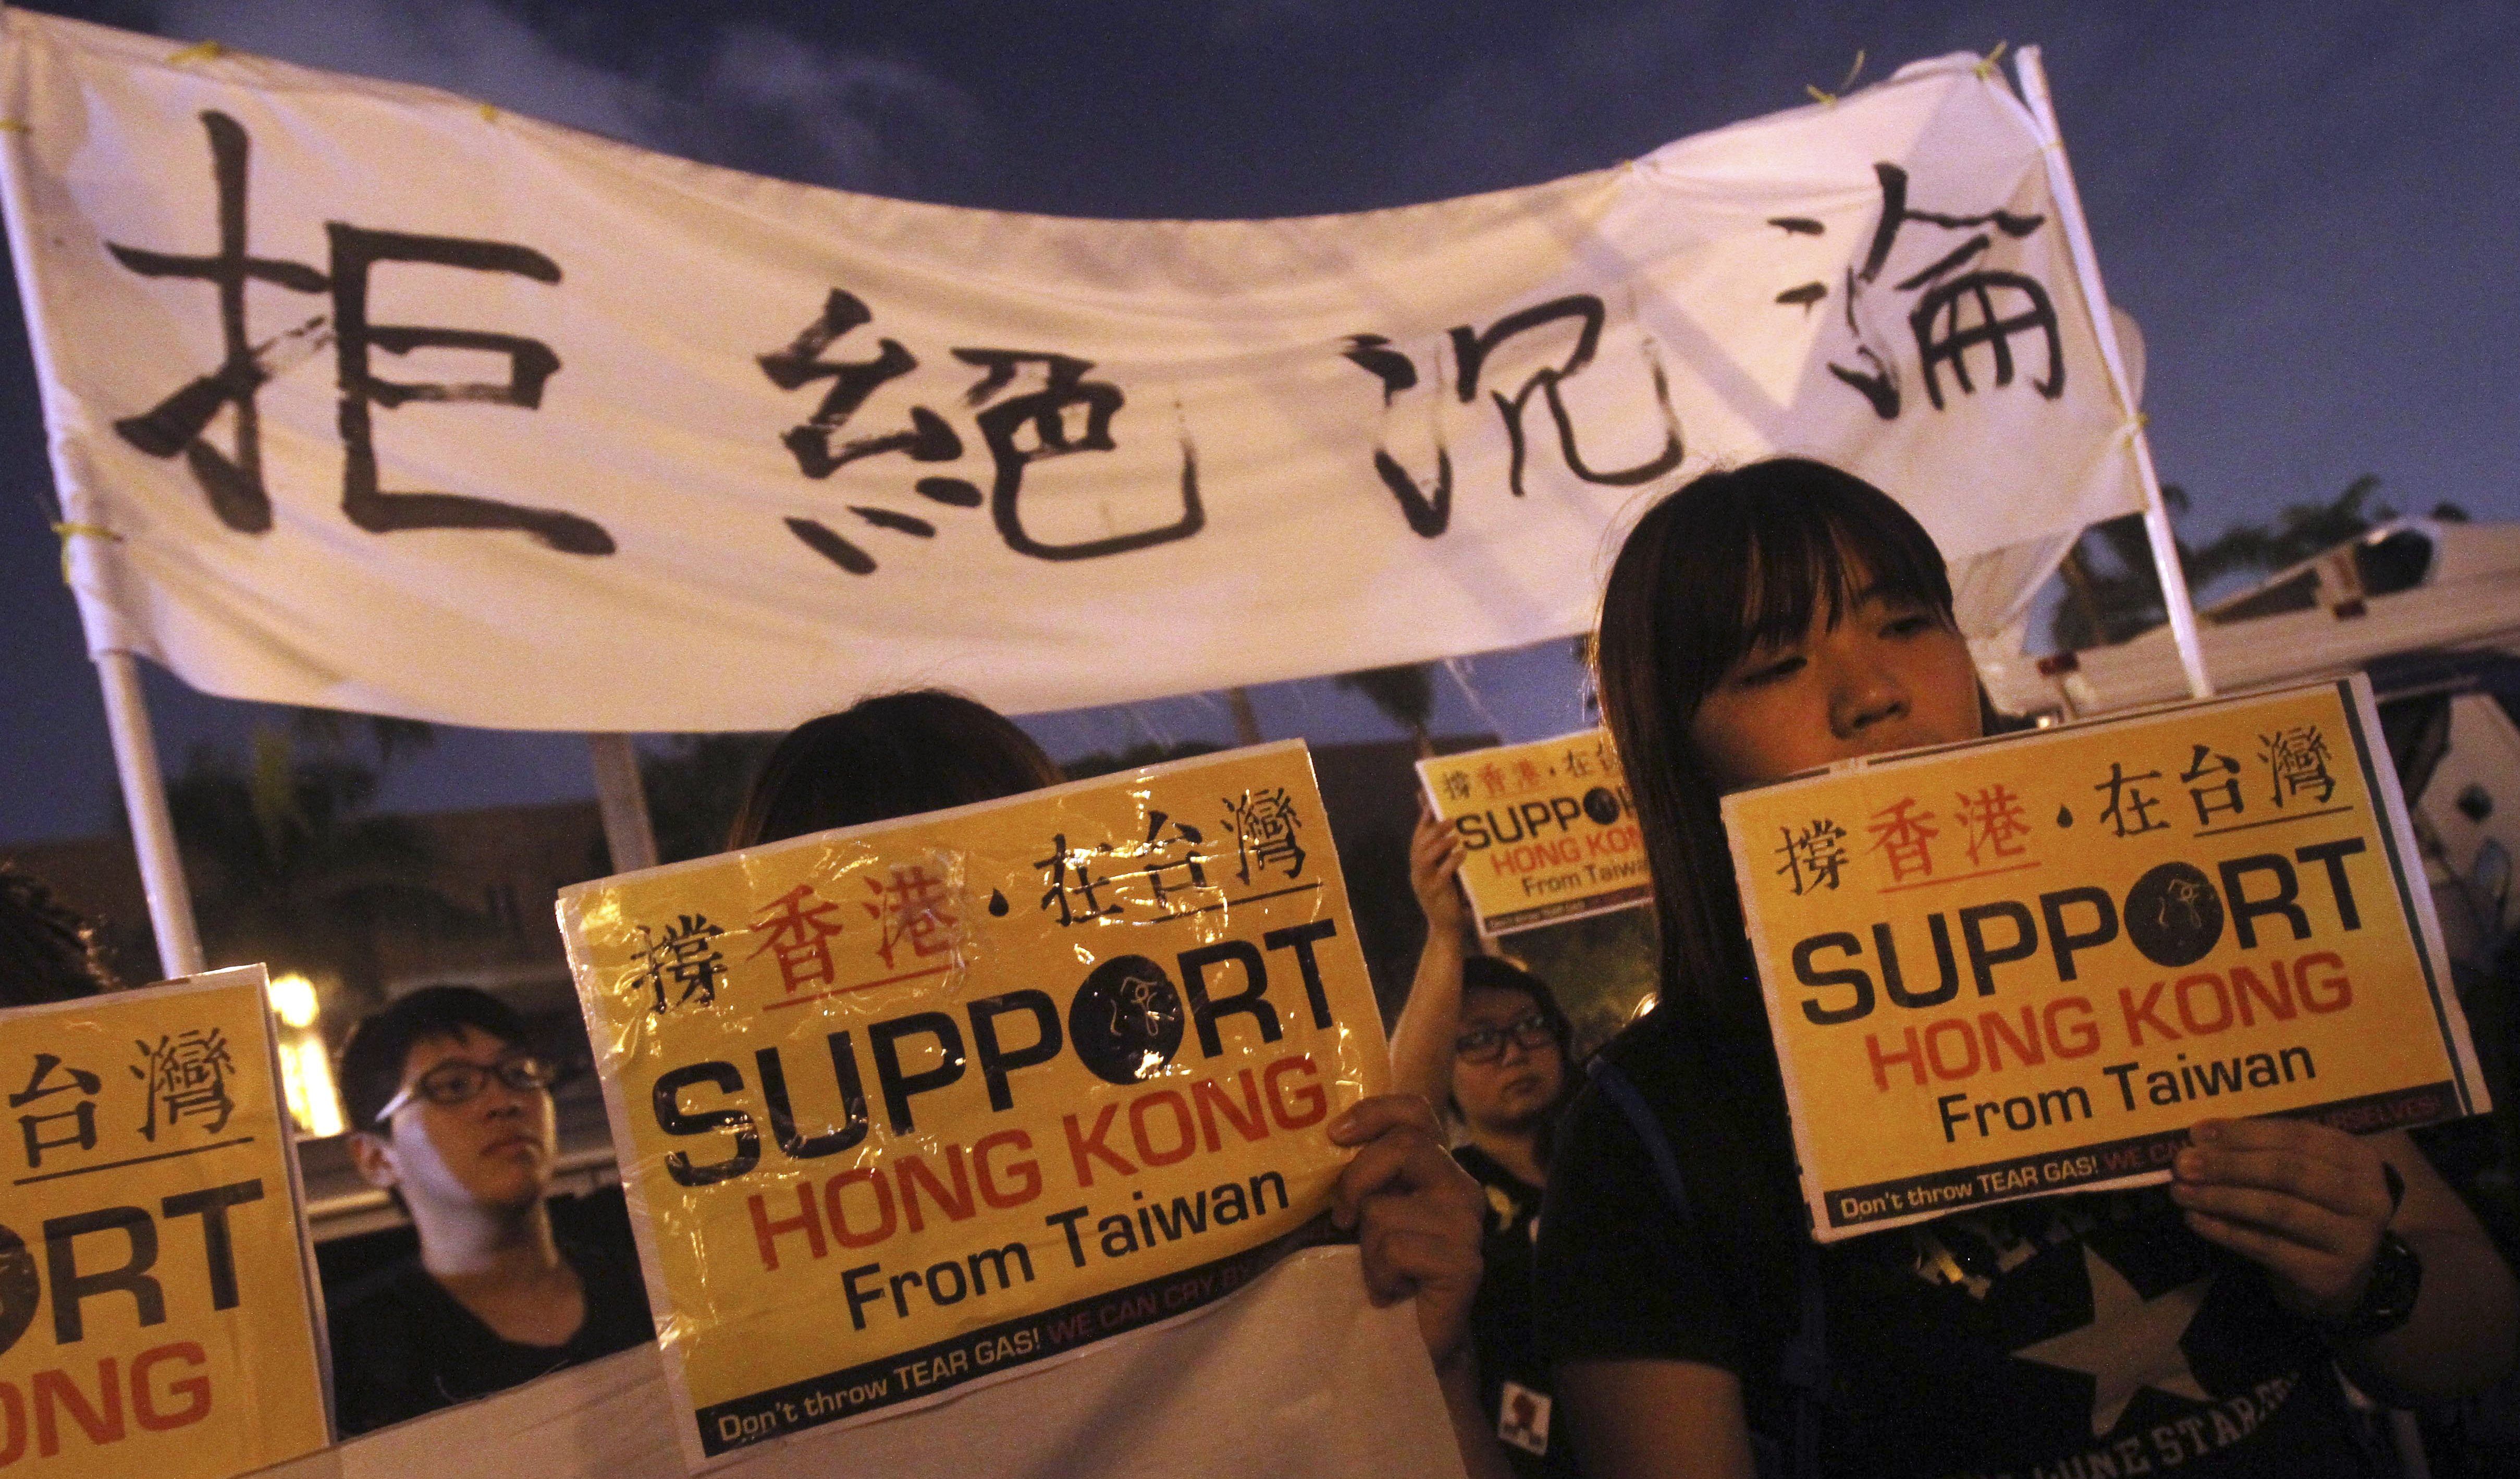 Demonstrators gather and hold slogans to support pro-democracy protests taking place in Hong Kong at Liberty Square in Taipei, Taiwan, Oct. 1, 2014.